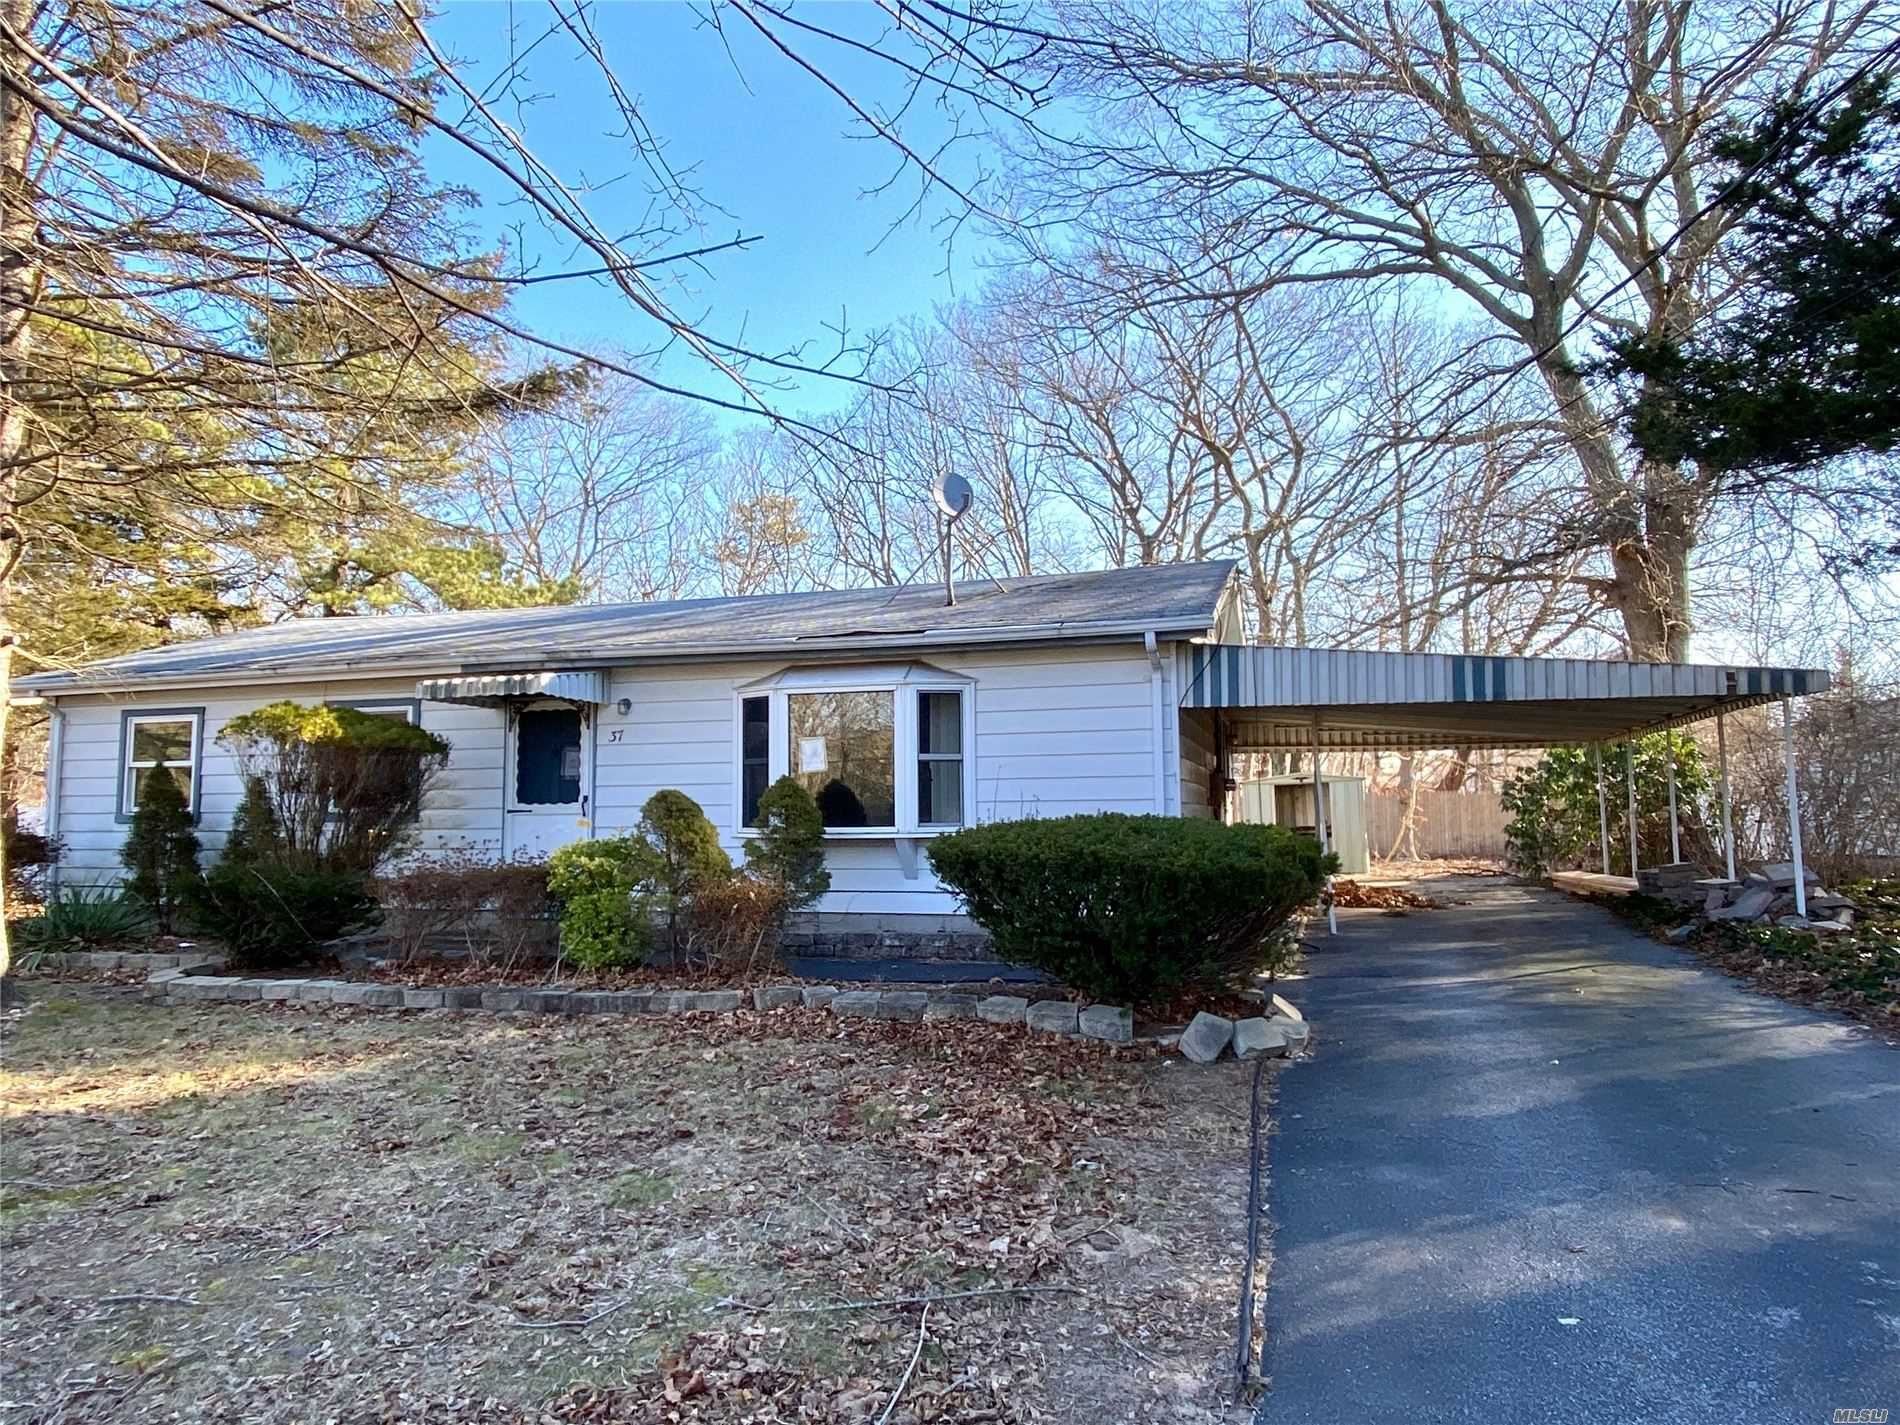 37 Woodville Road, Middle Island, NY 11953 - MLS#: 3198356